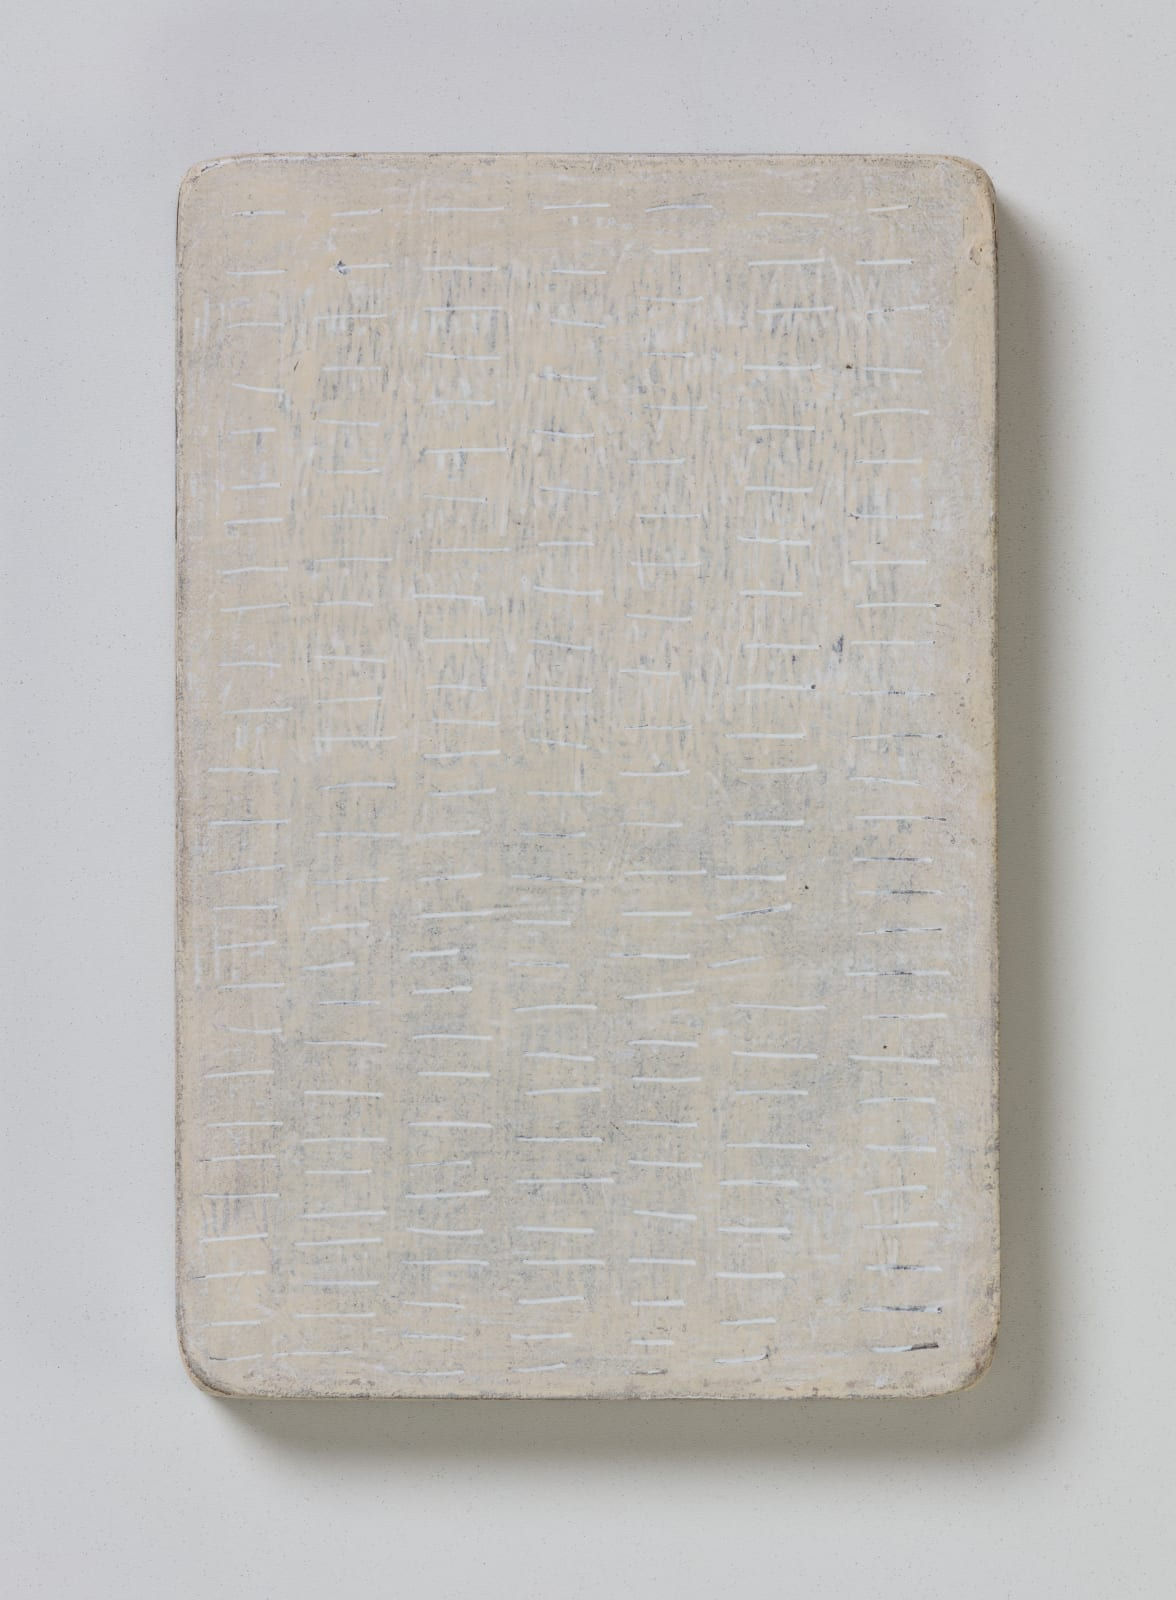 No.7, from flume series, 2020 oil on paper on wood 20.5 x 13.5 cm / 8 x 5.3 in